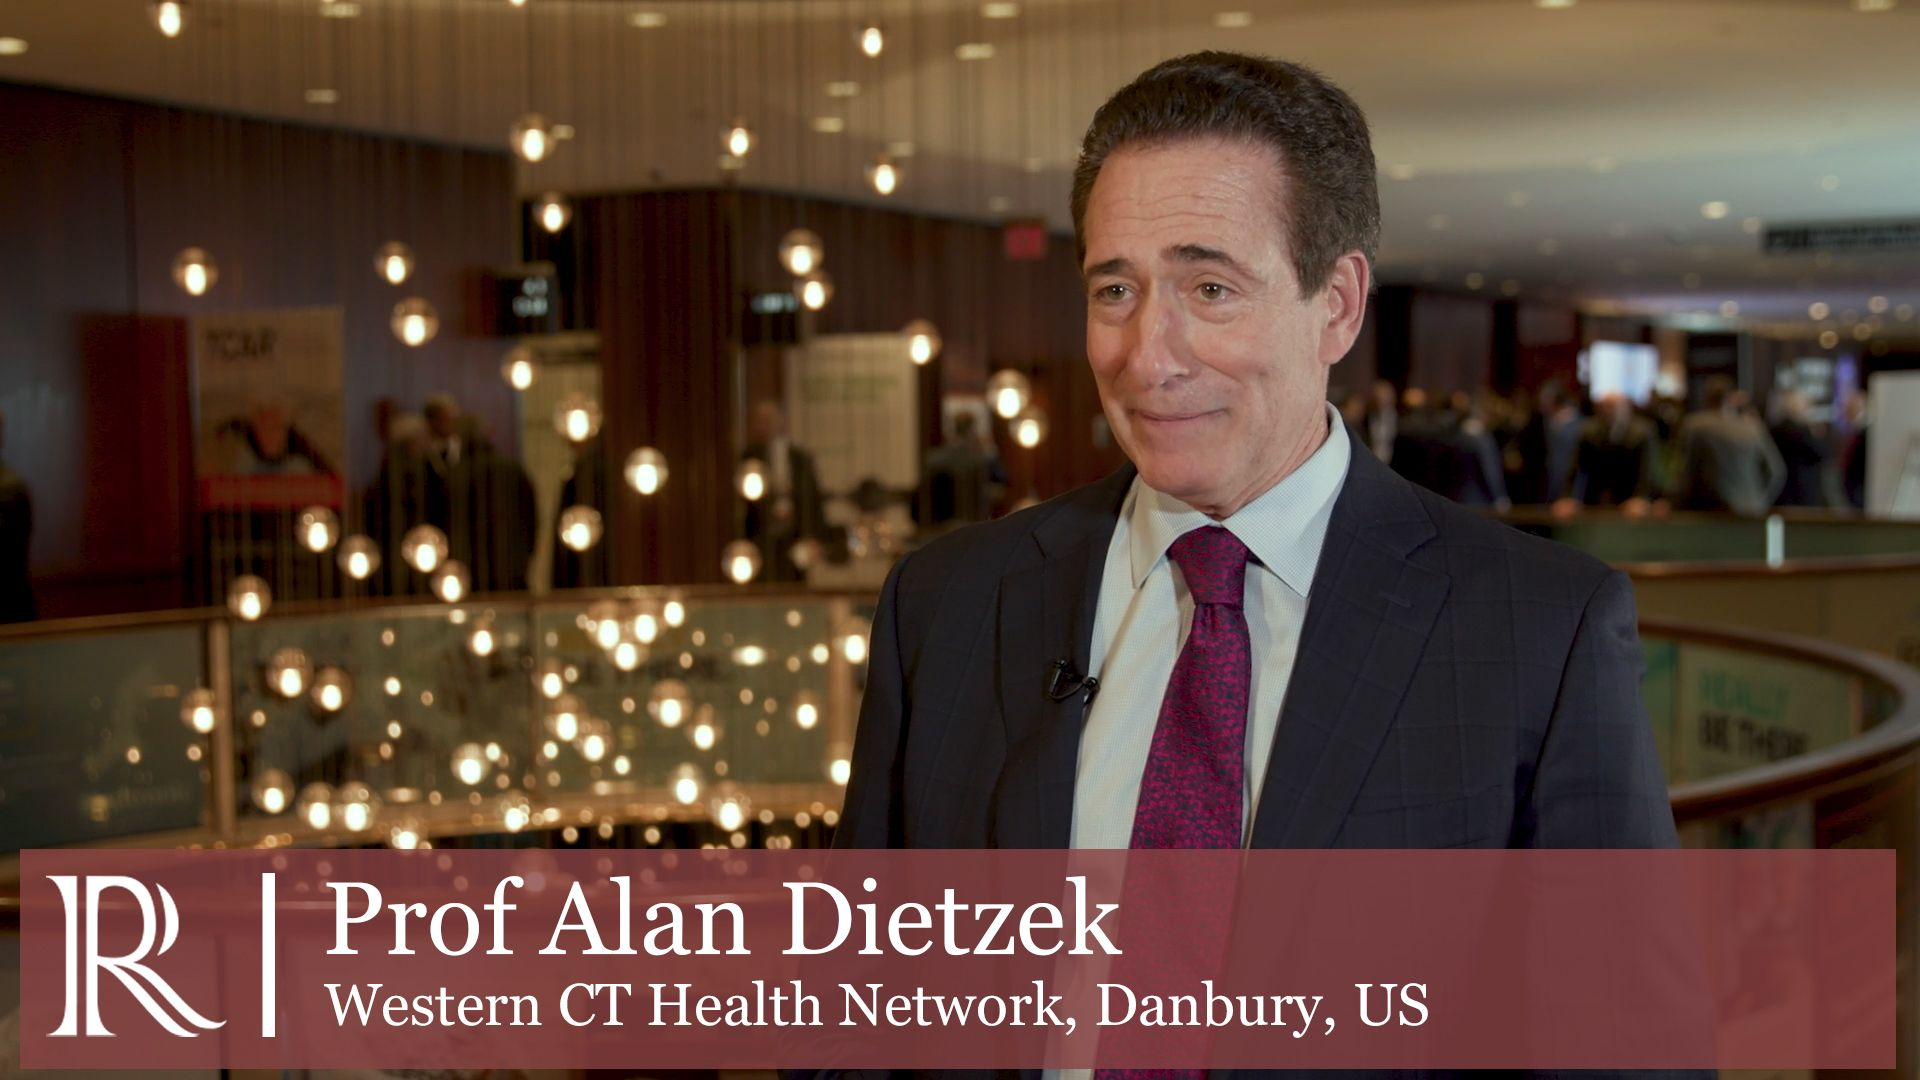 VEITHsymposium™ 2019: Status of Vascular Surgery in the US — Prof Alan Dietzek